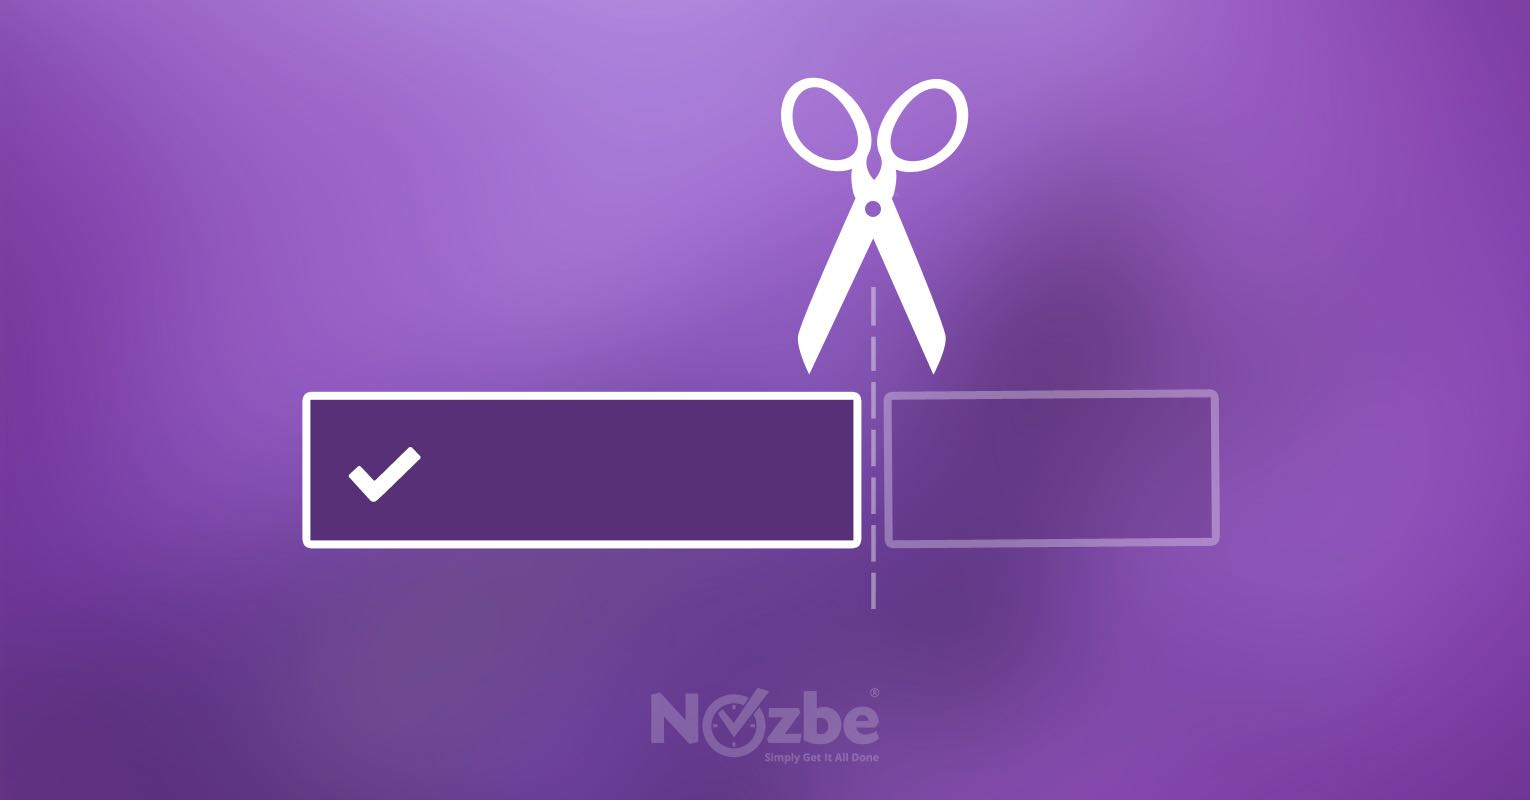 Keep short Nozbe task names